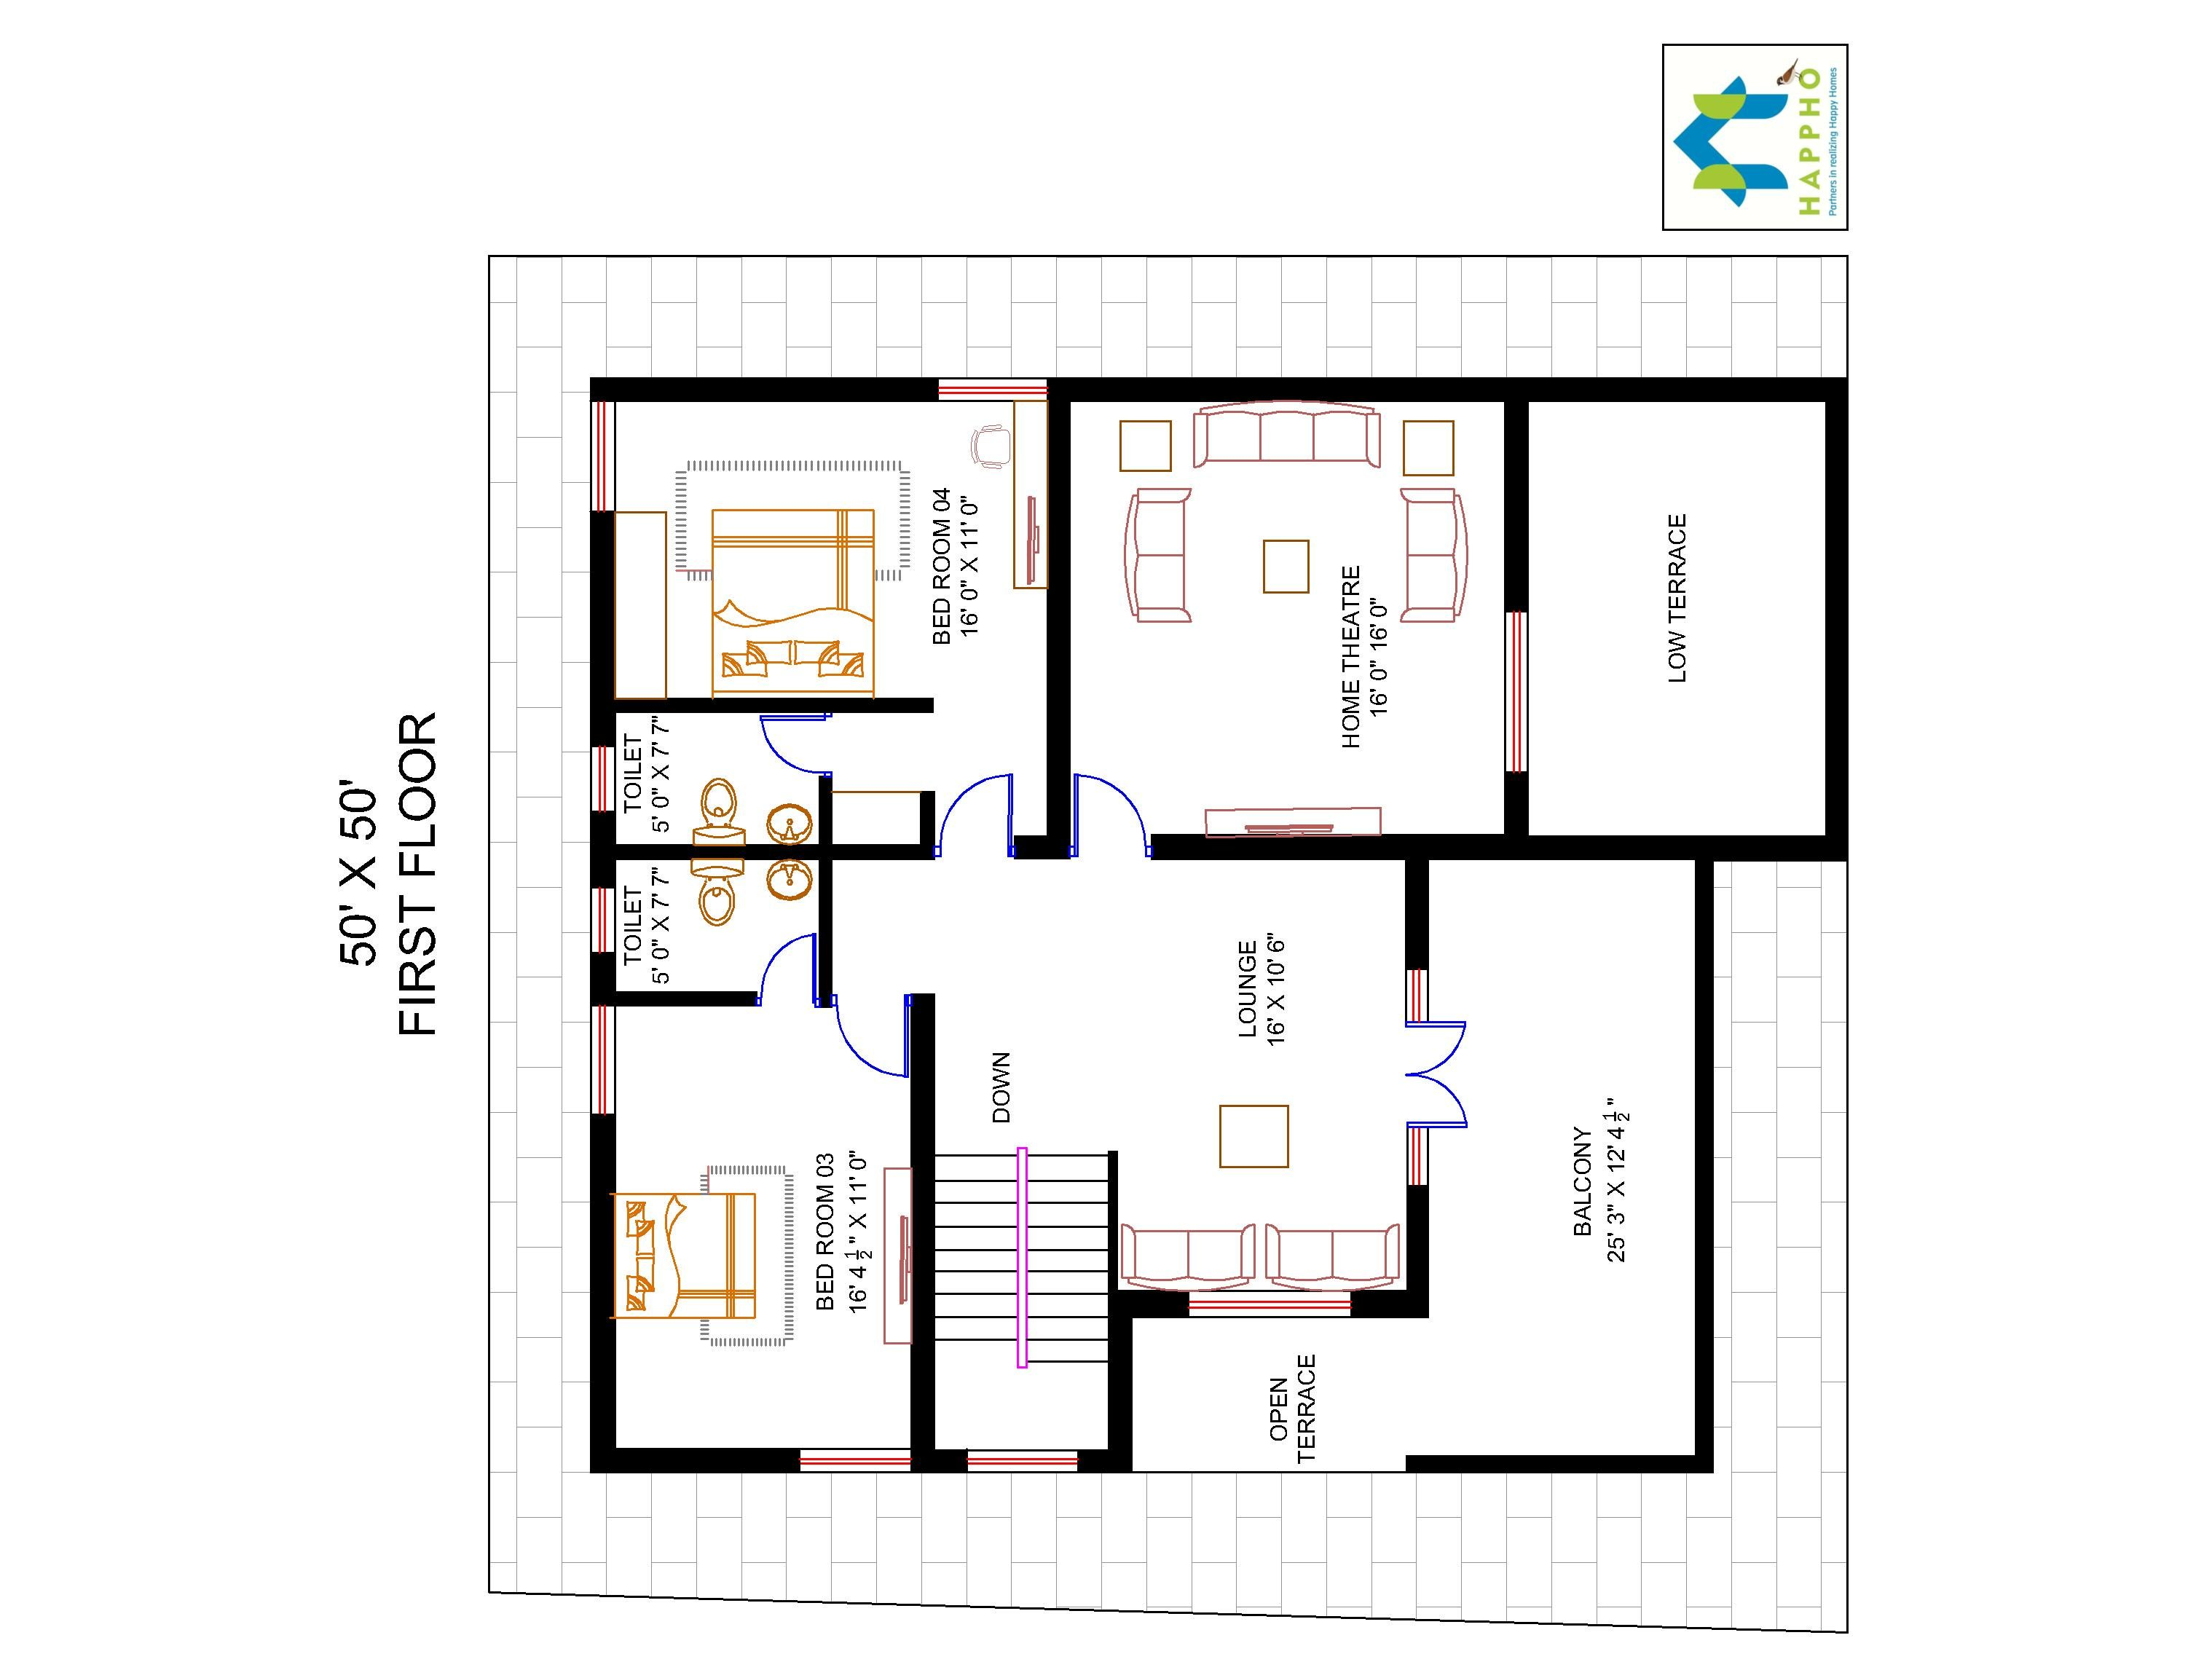 2500 sq ft bungalow floor plans for Home plans 2500 square feet